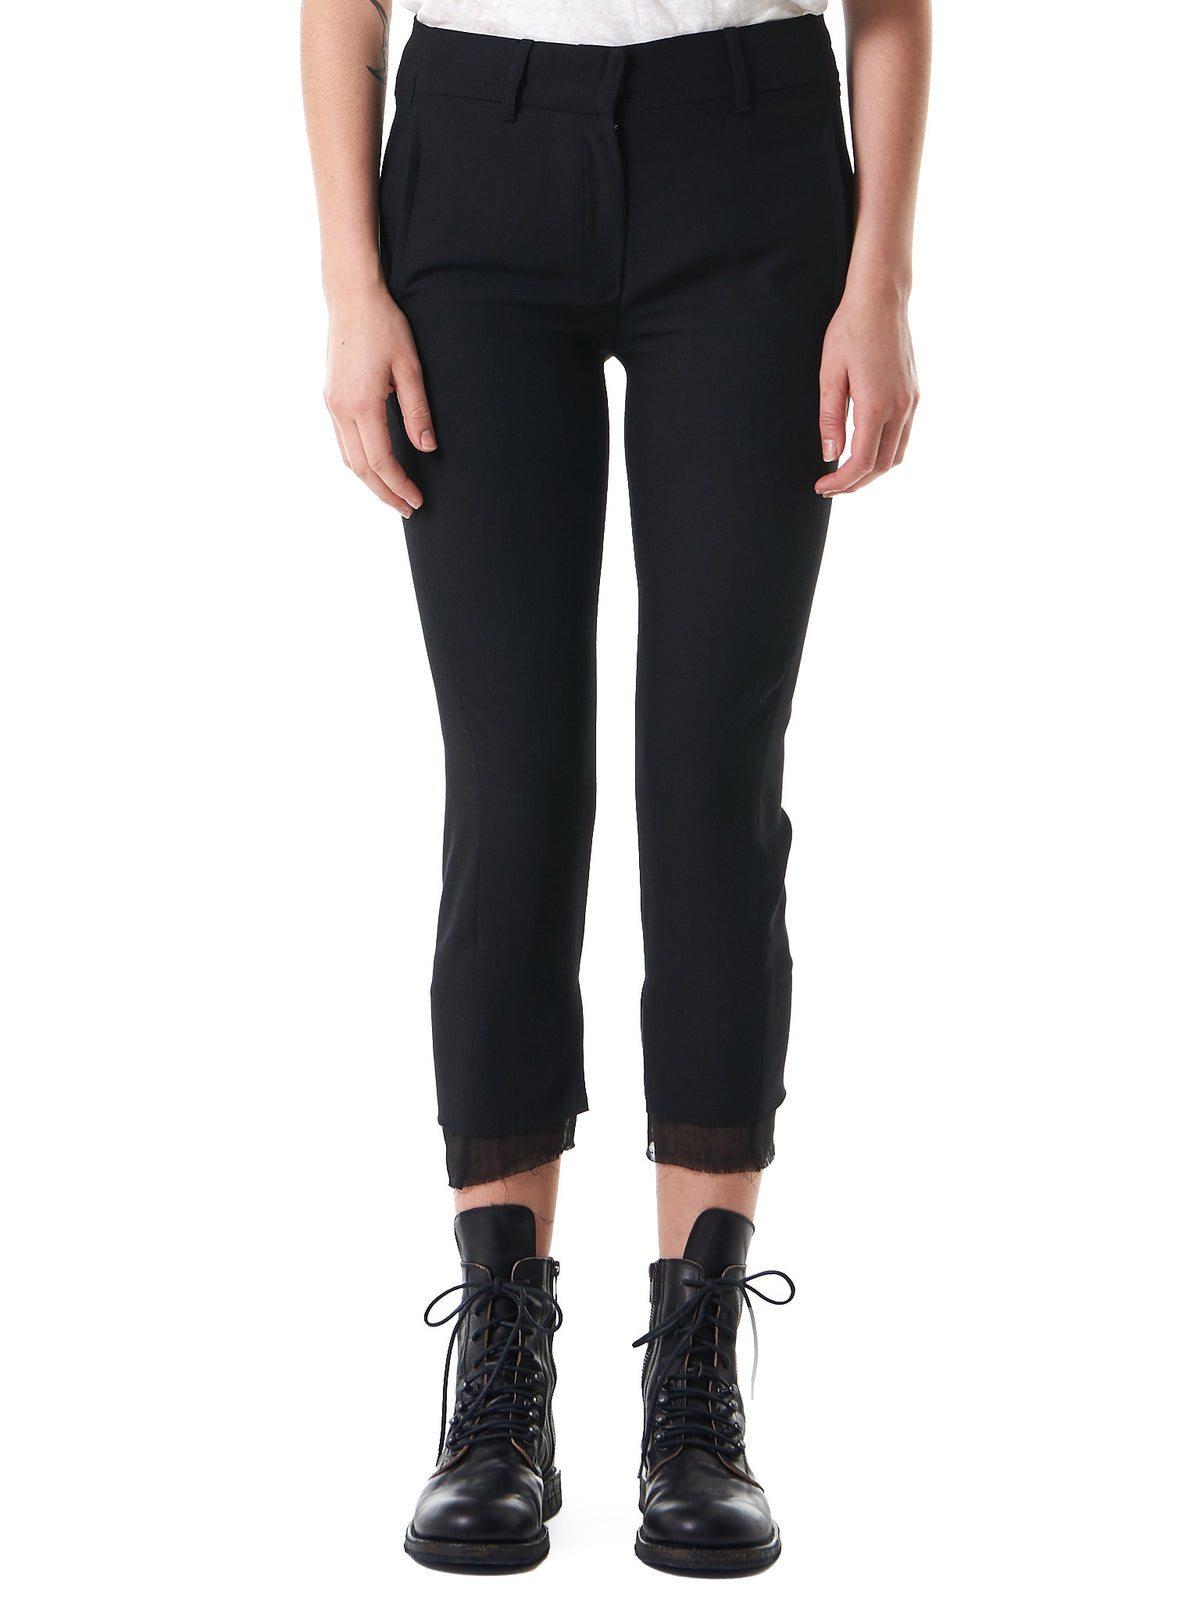 Tiered Hem Cropped Trouser (1701-1406-170-099) - H. Lorenzo